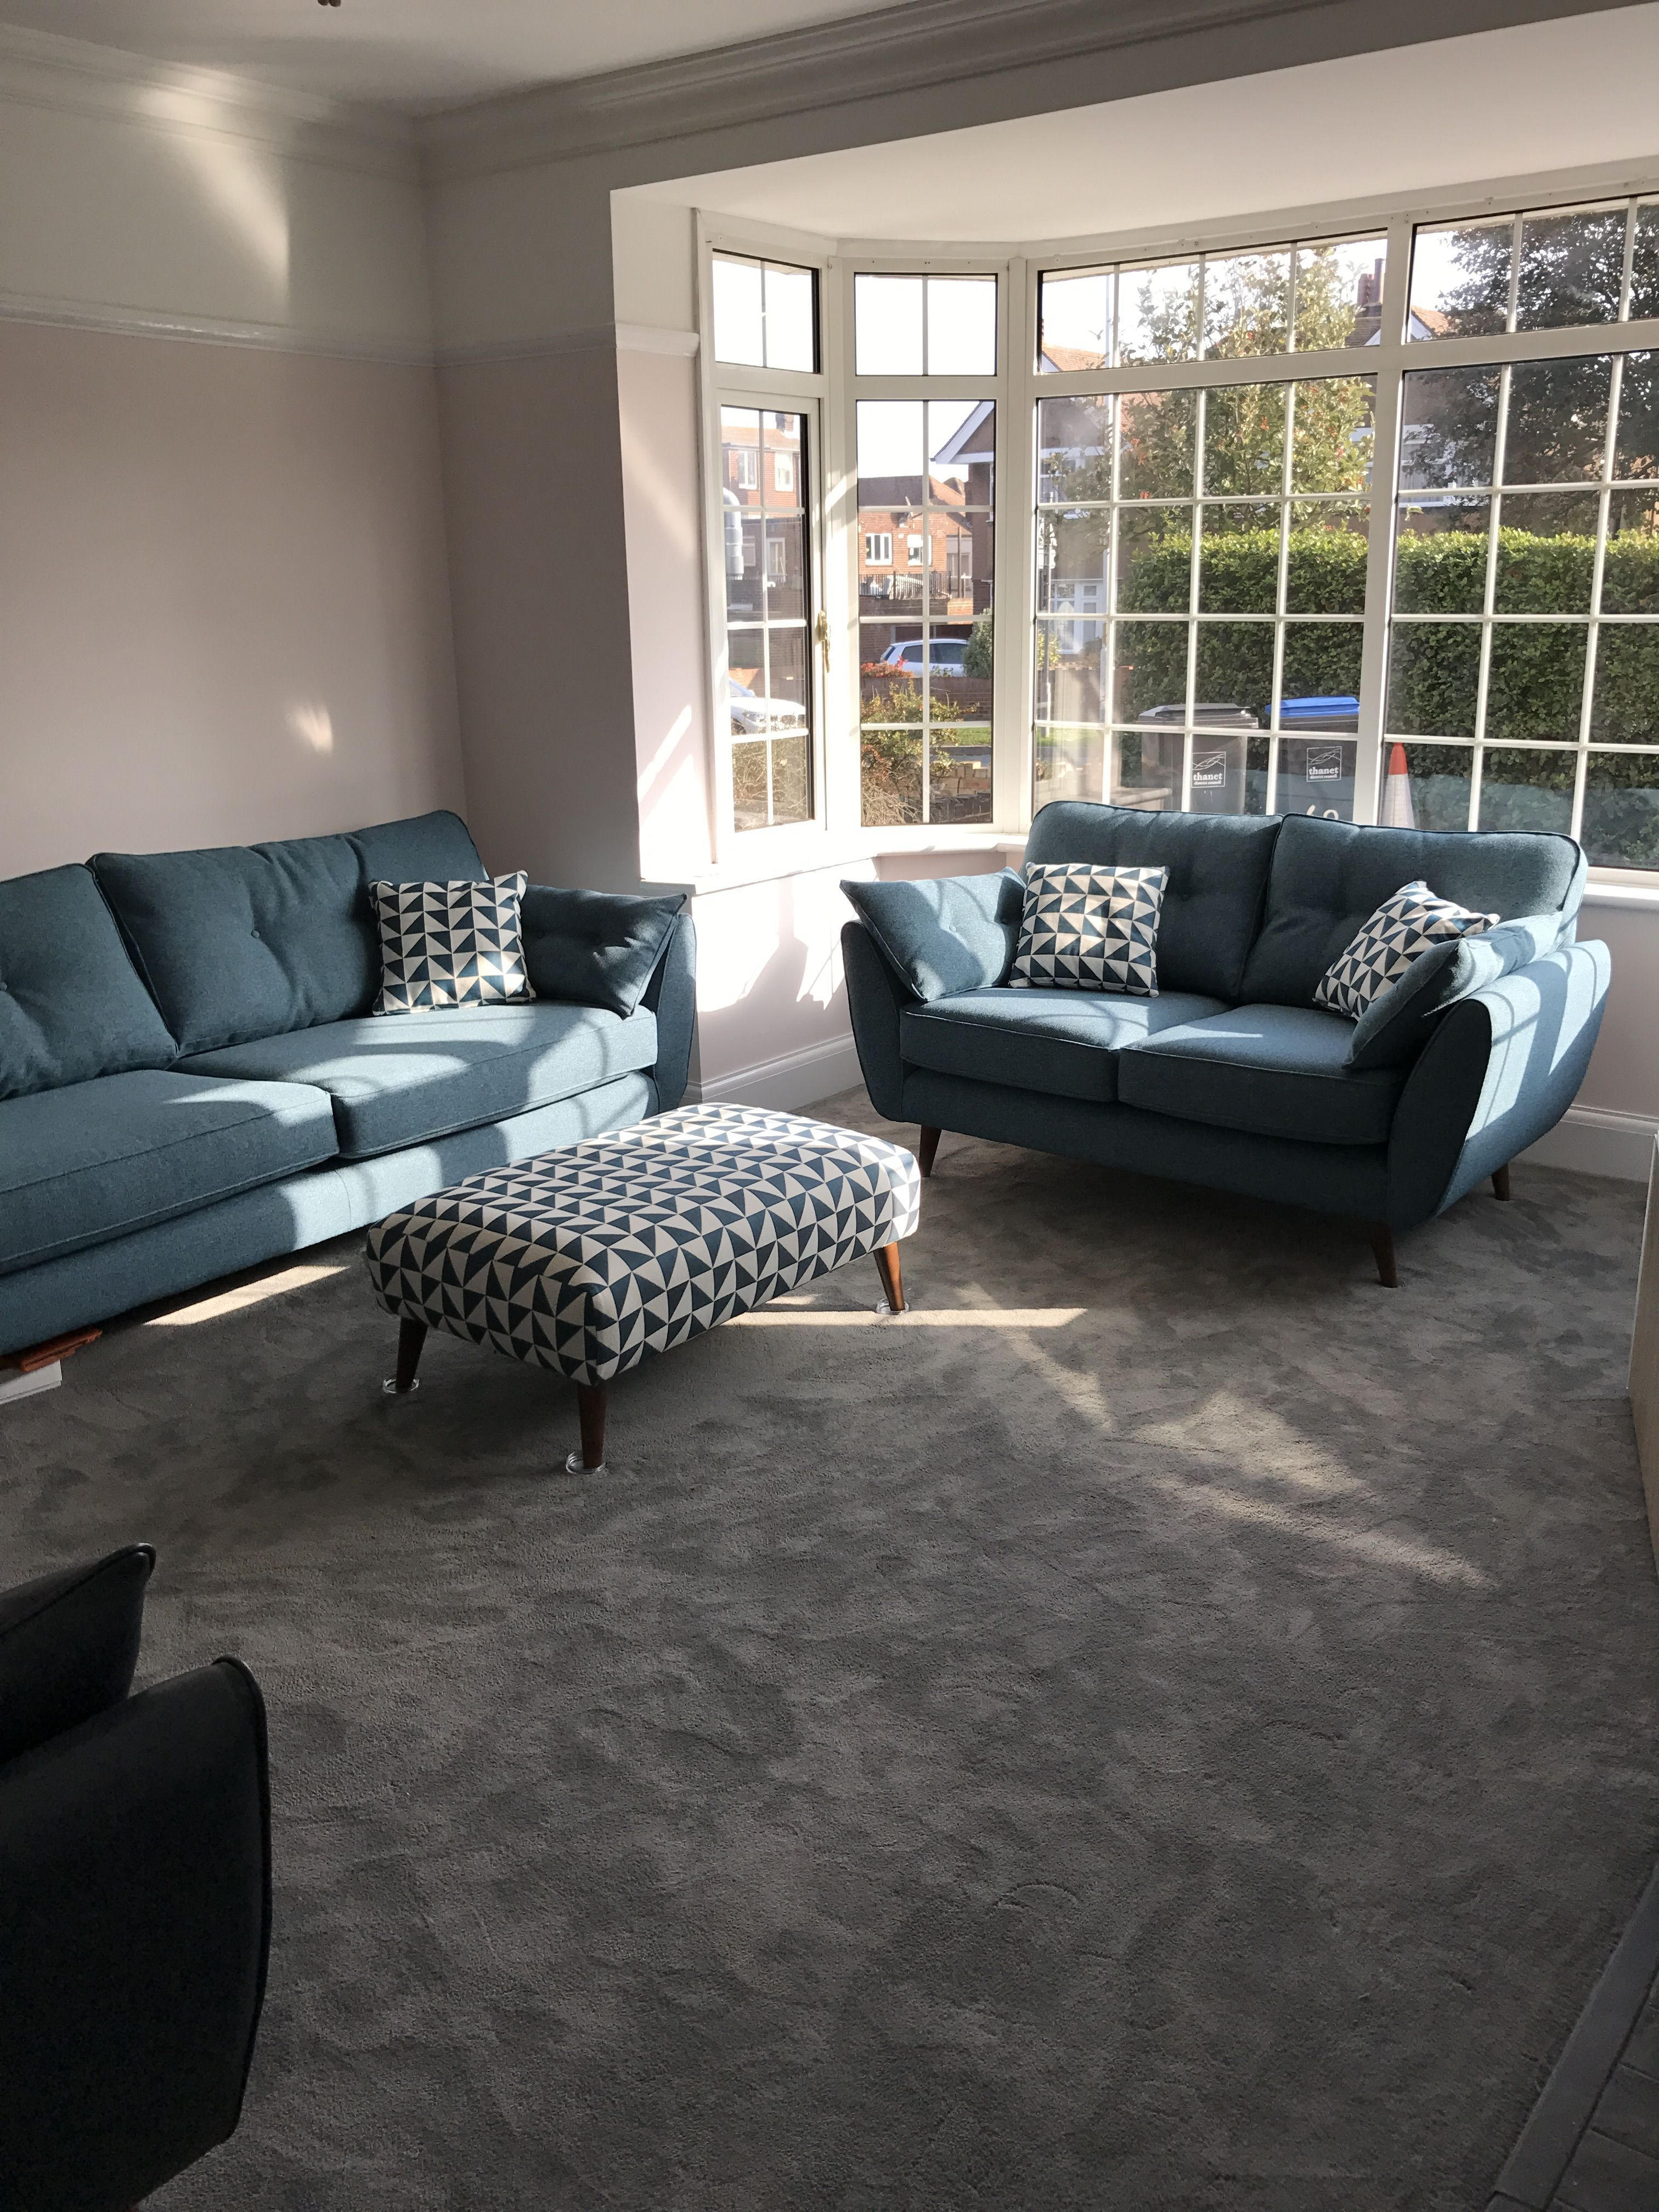 Dfs zinc French Connection two seater sofa | in Wellington